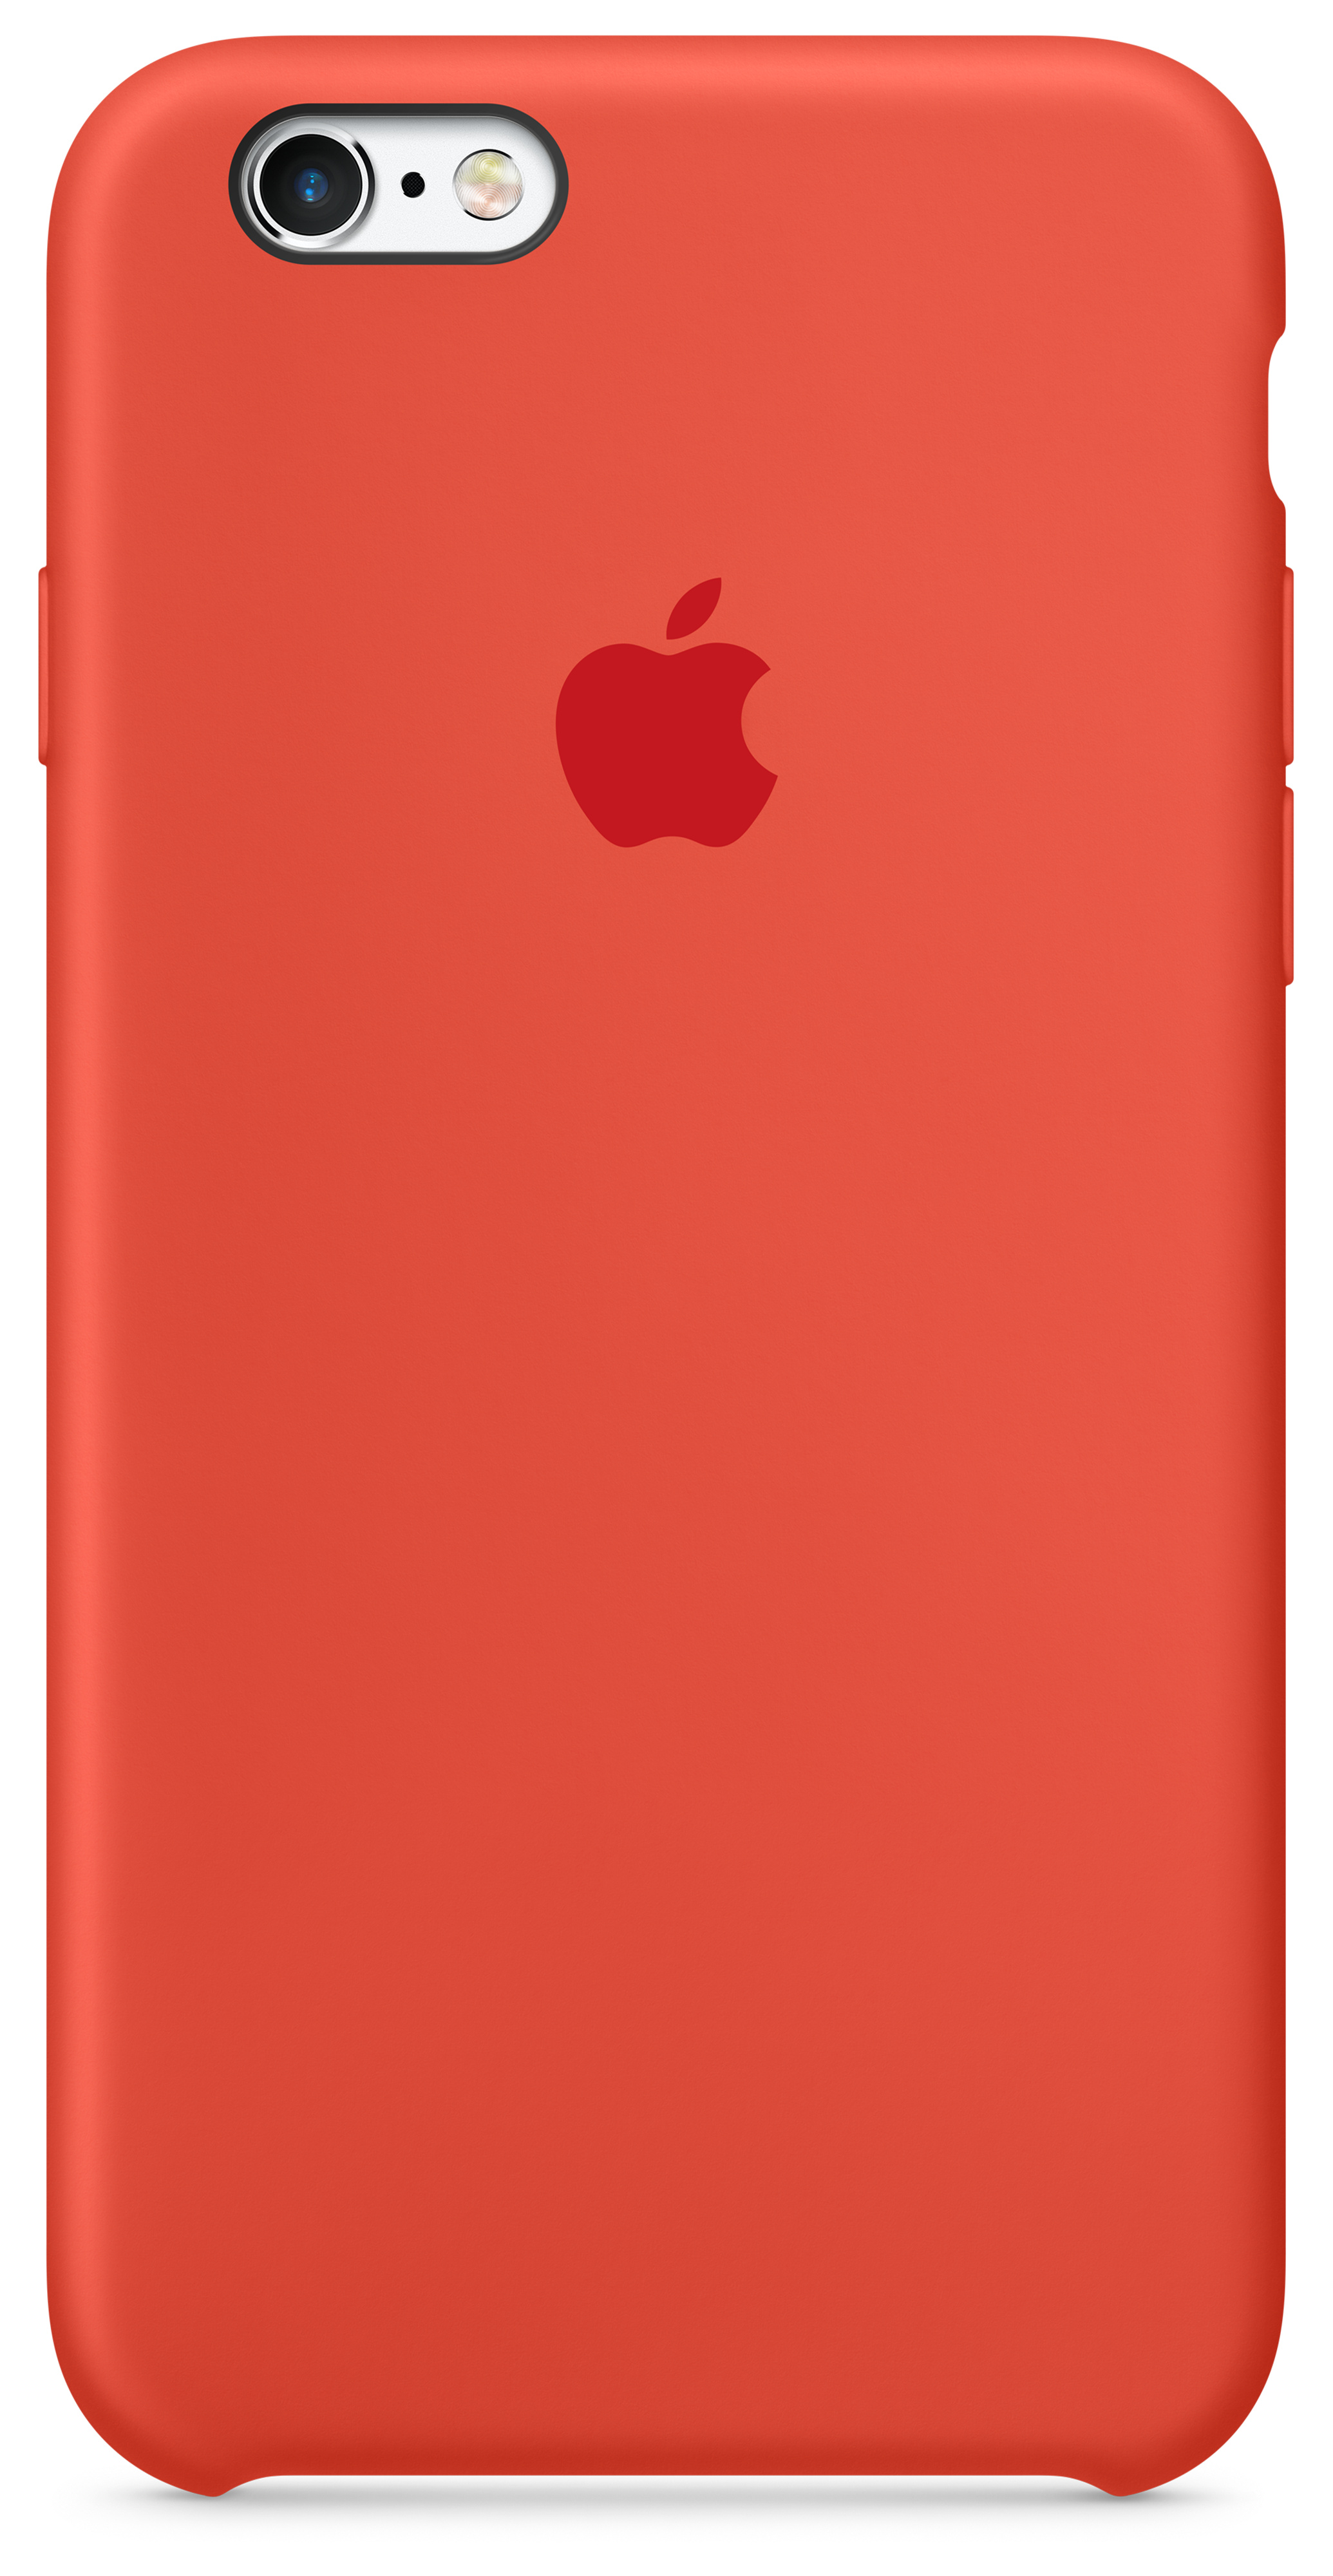 cheap for discount 38bb7 5d38b iPhone 6 / 6s Silicone Case - Orange